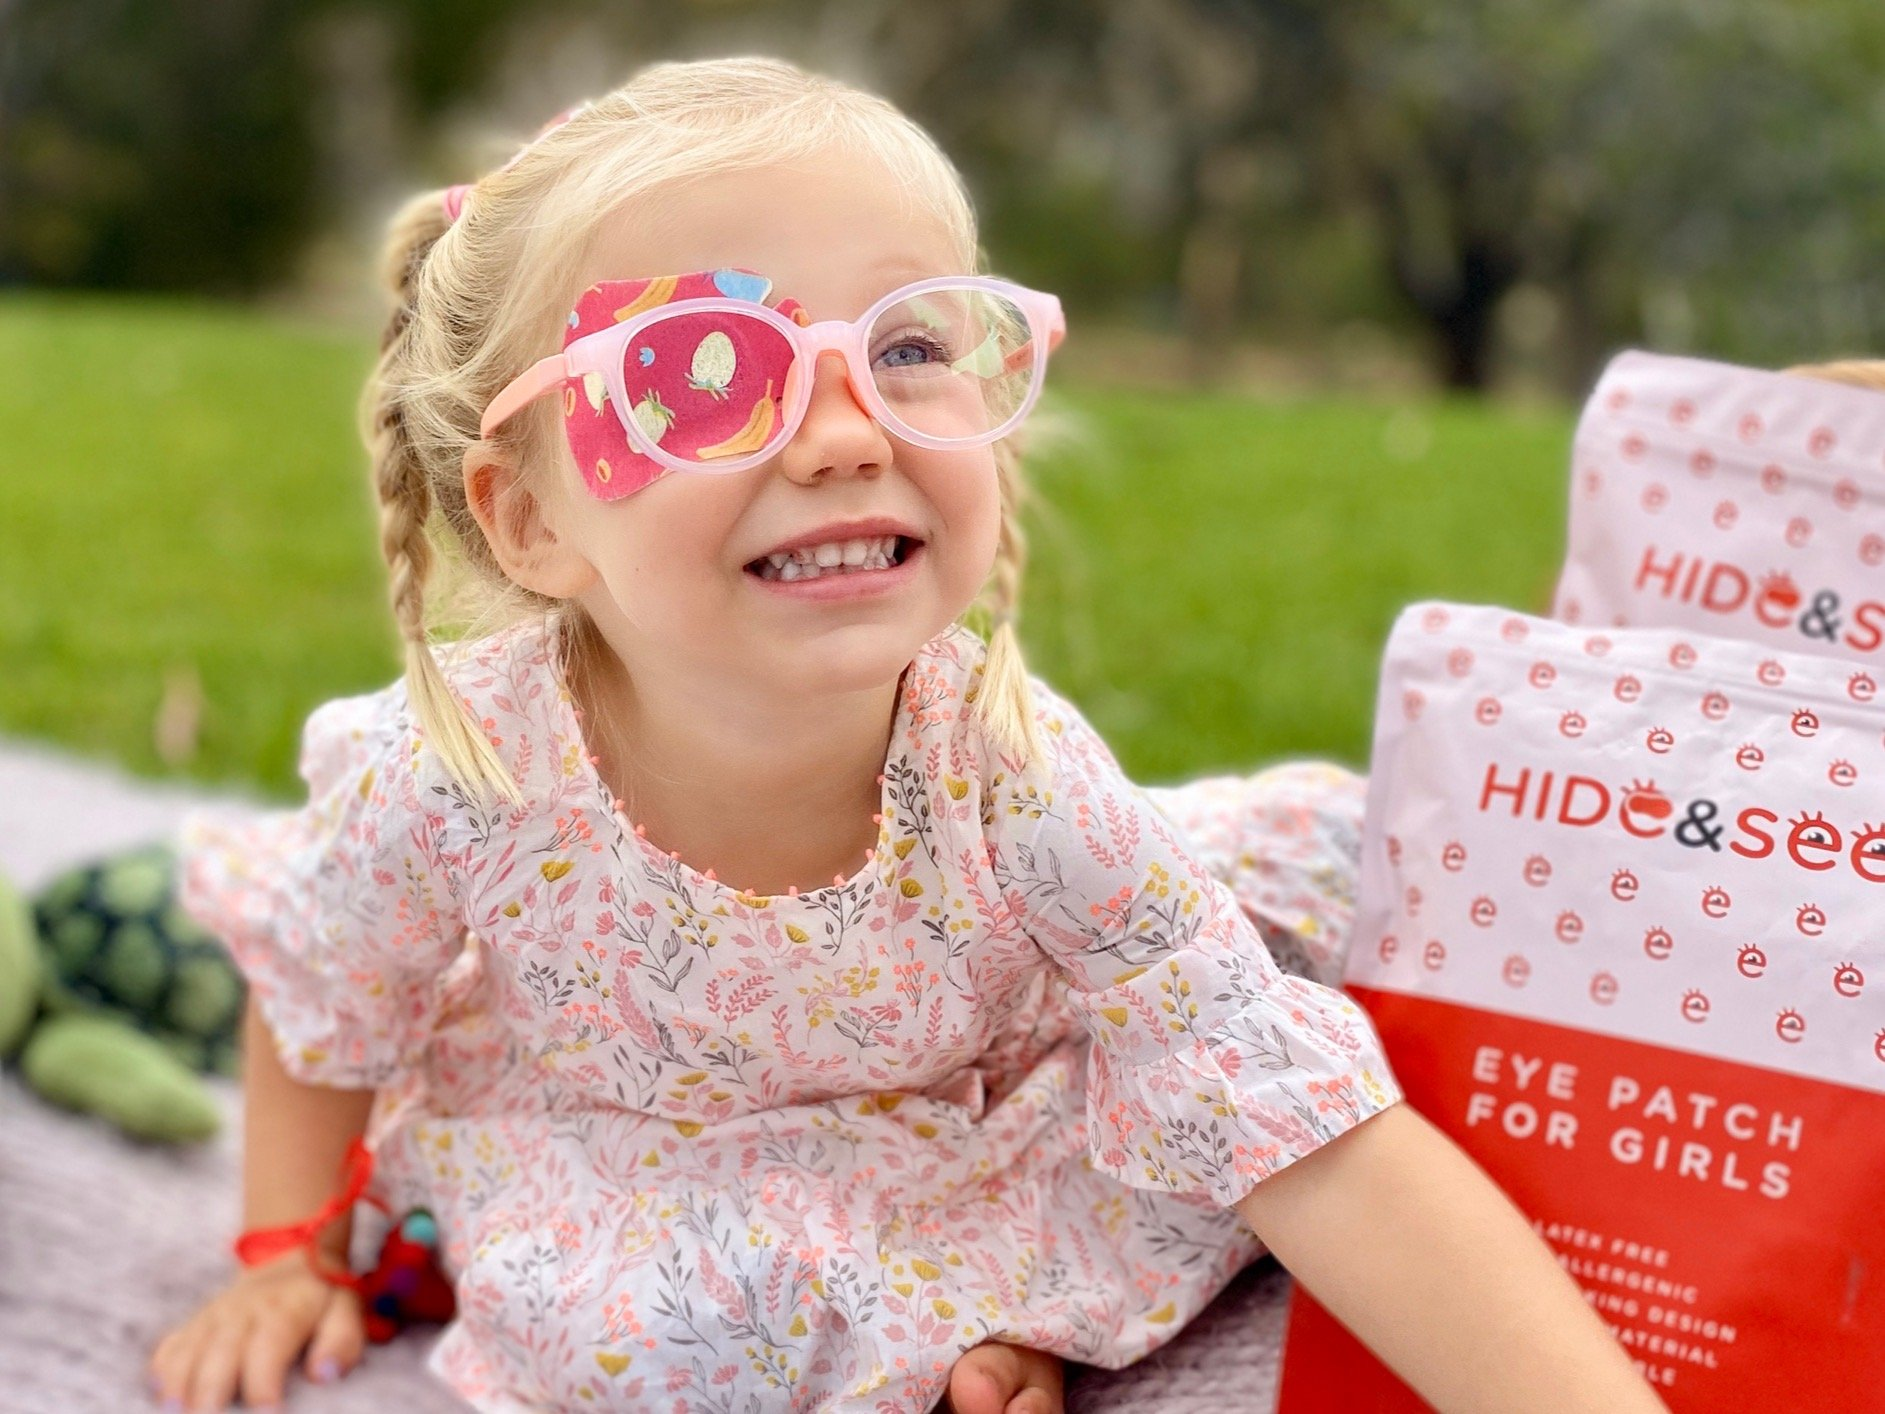 child wearing pink eyepatch and colored glasses